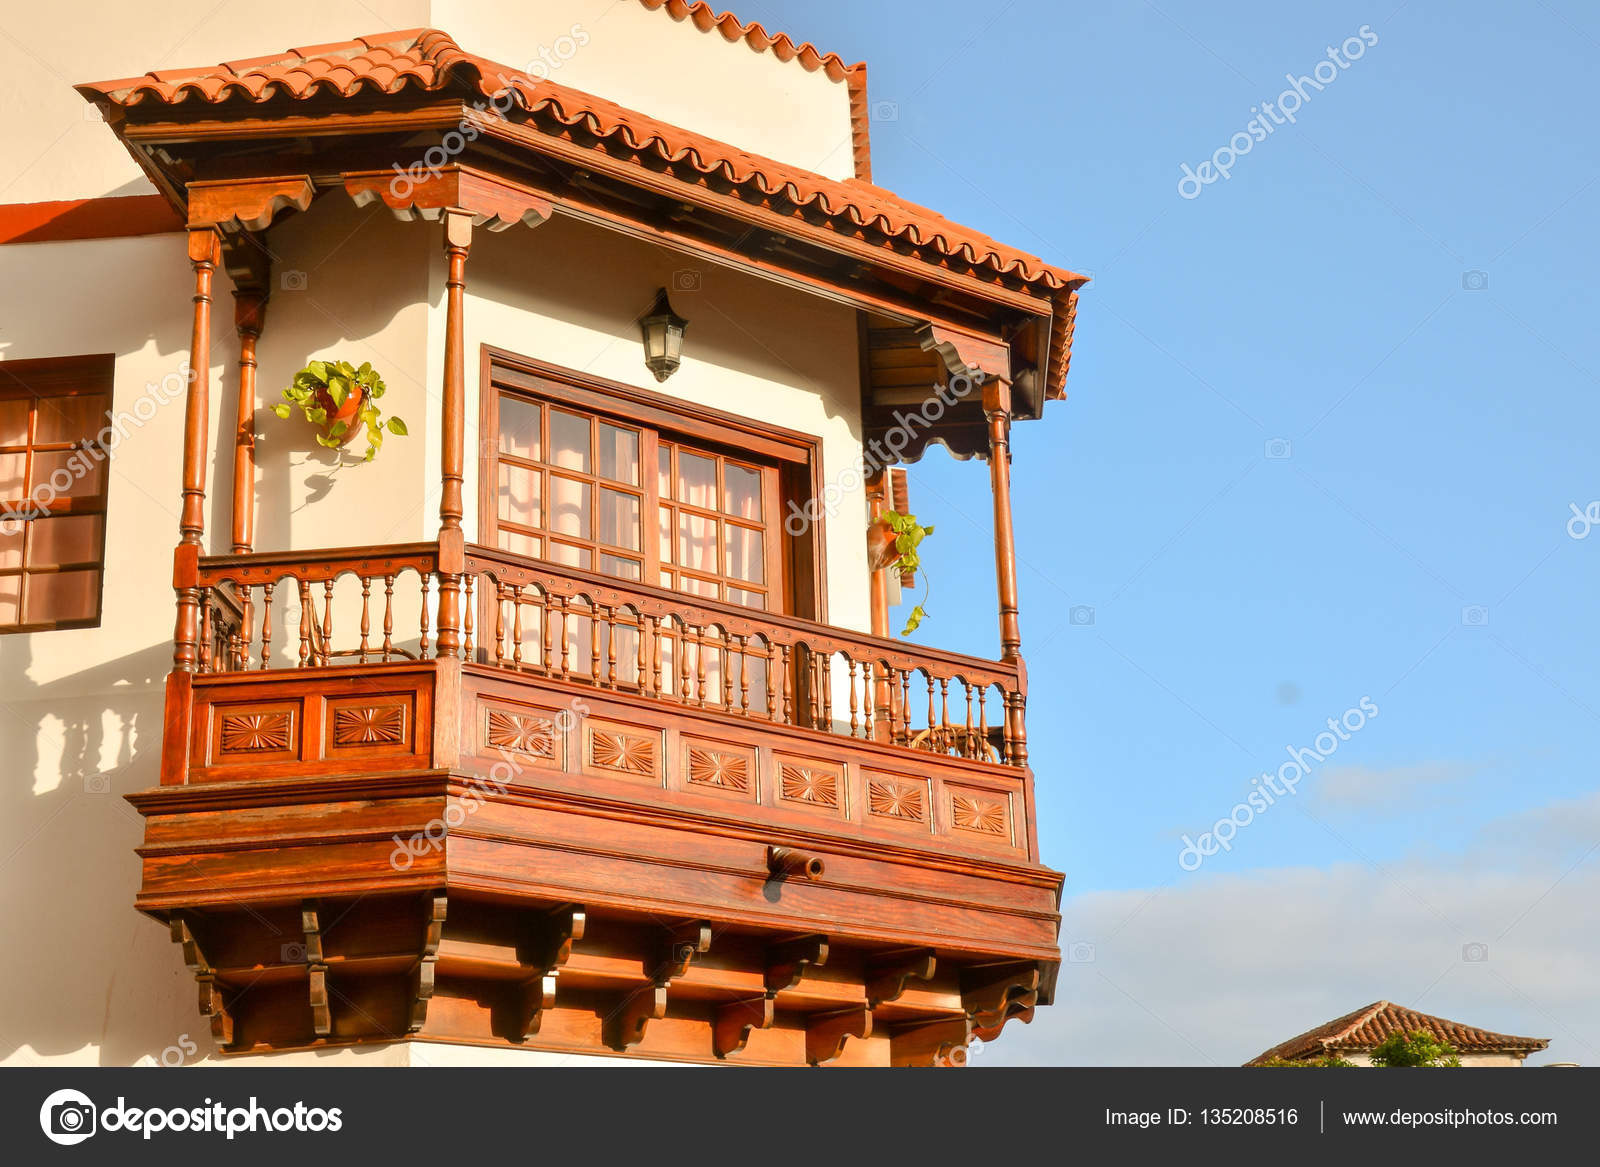 Image result for canarian balcony